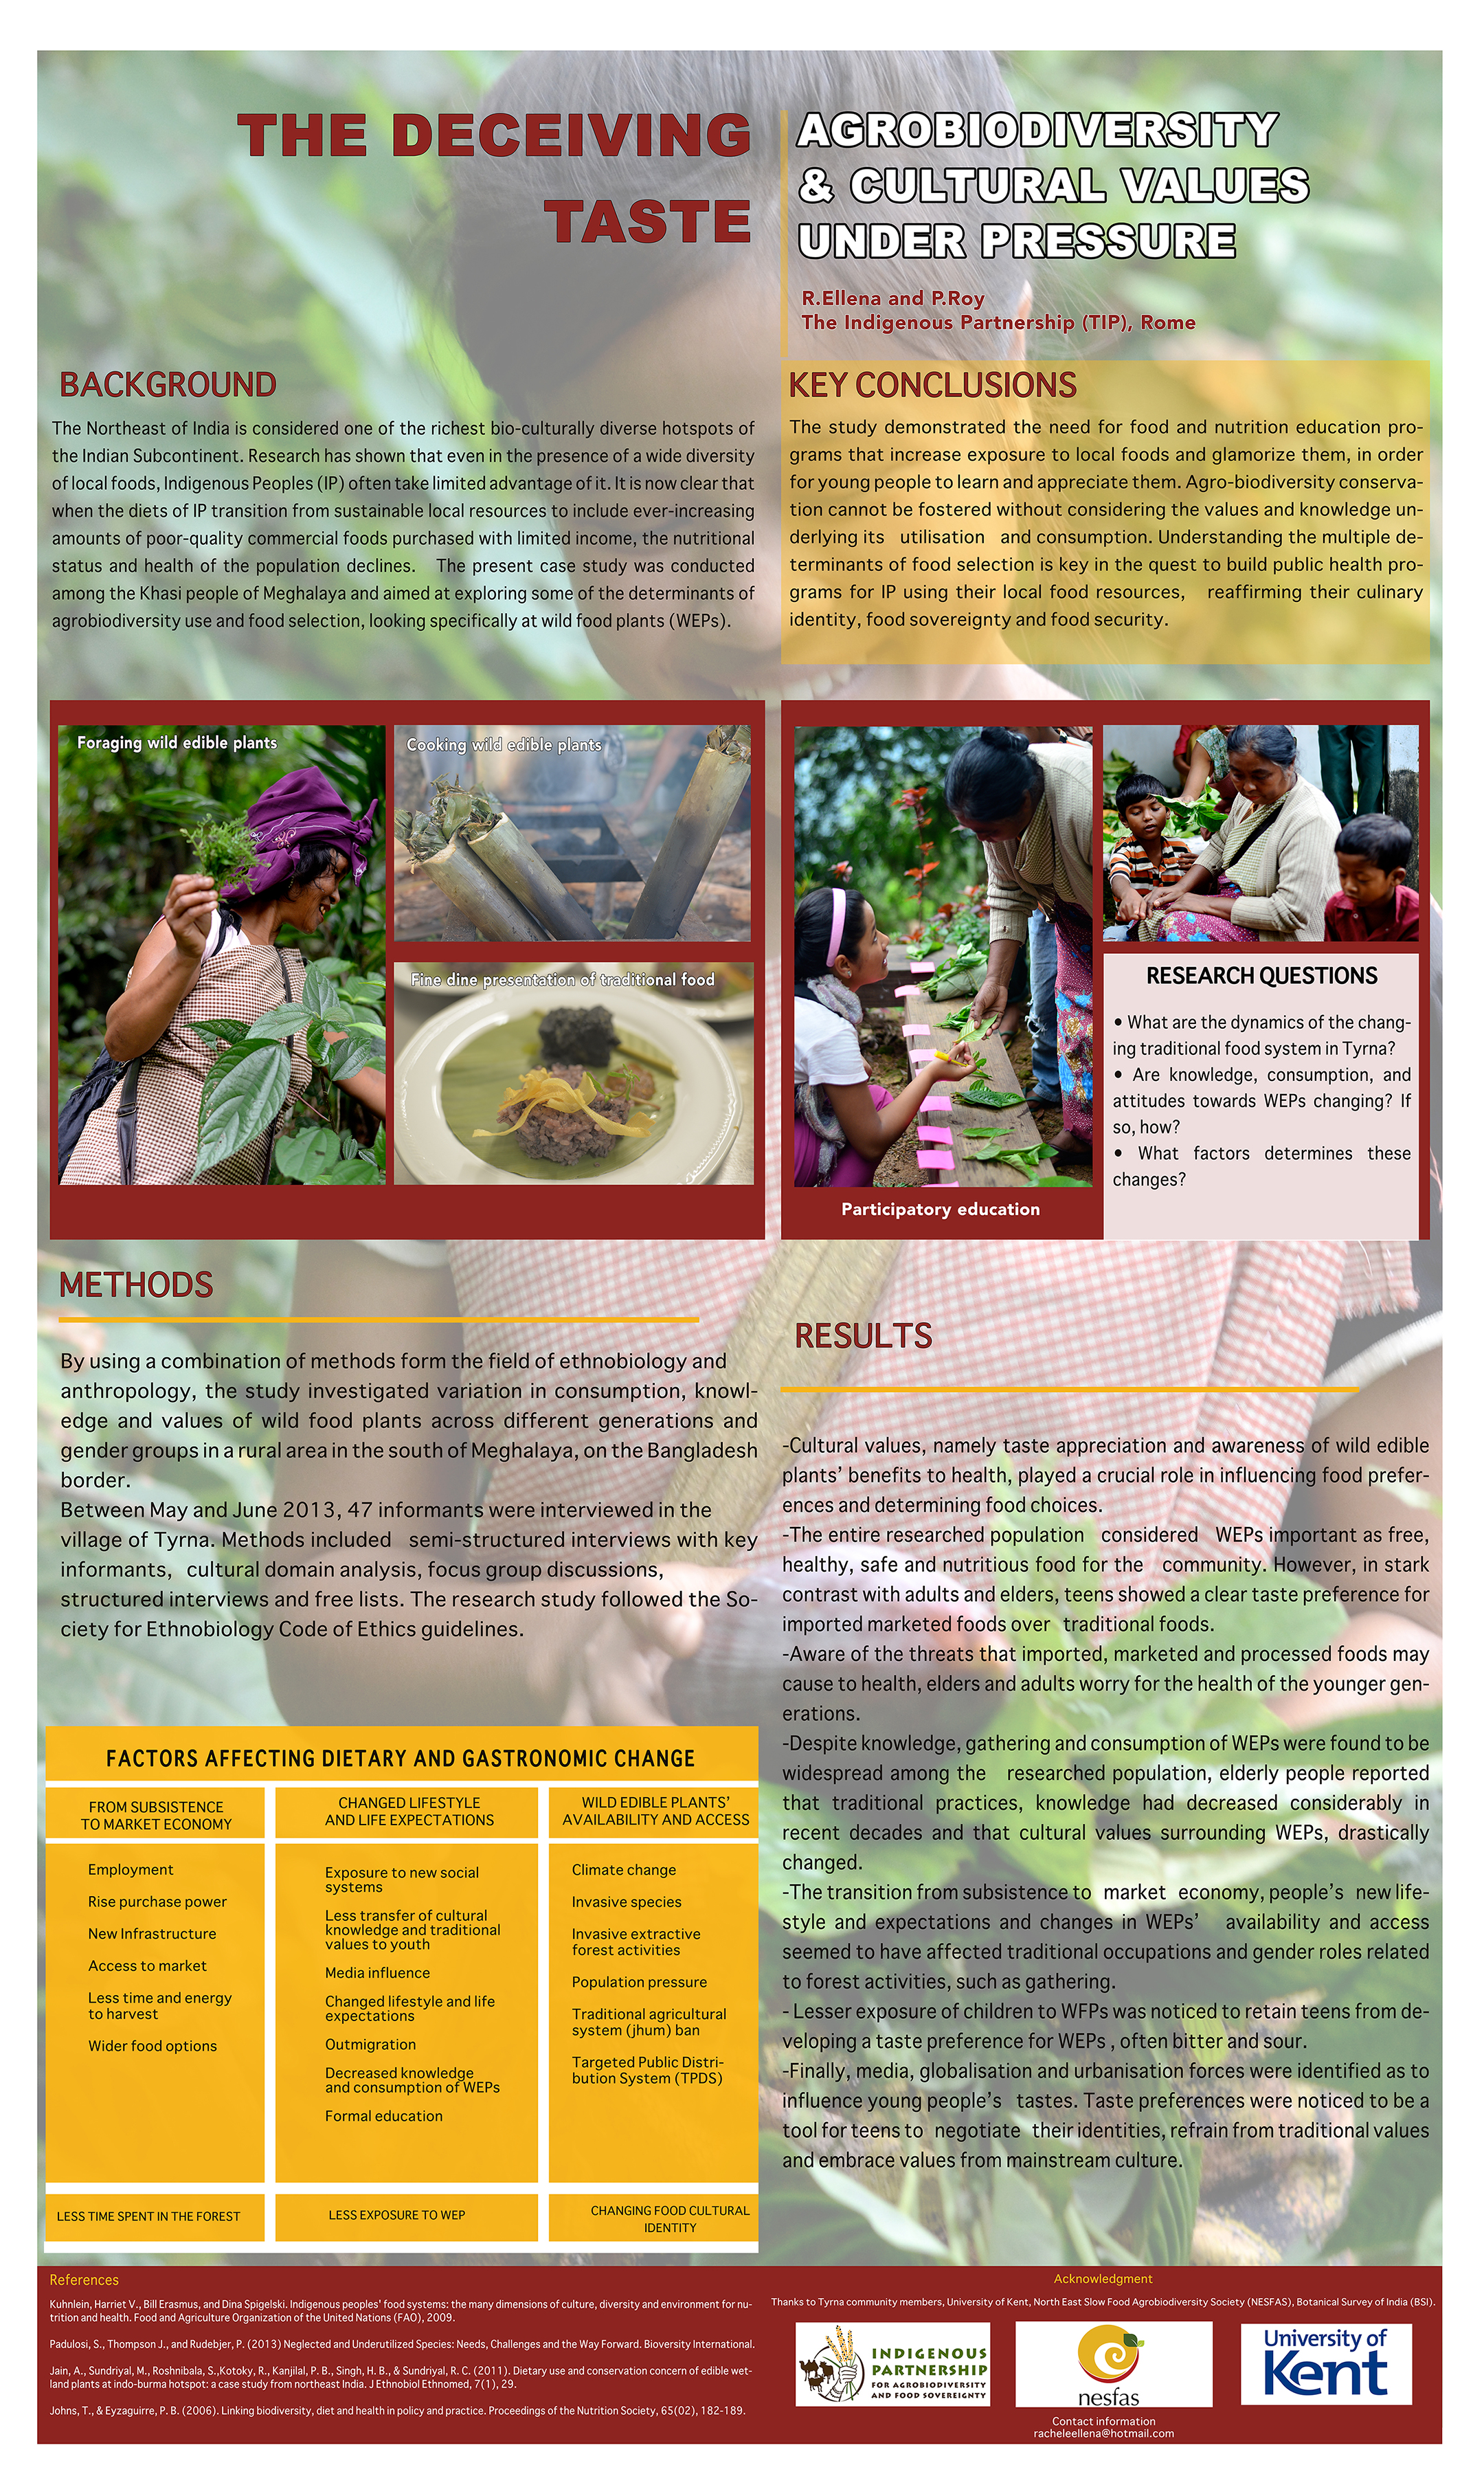 "The poster highlighted ""The Deceiving Taste: Agrobiodiversity and Cultural Values Under Pressure"" a study done by Phrang Roy (Coordinator TIP, and R. Ellena, Reseach officer, TIP, Rome)."